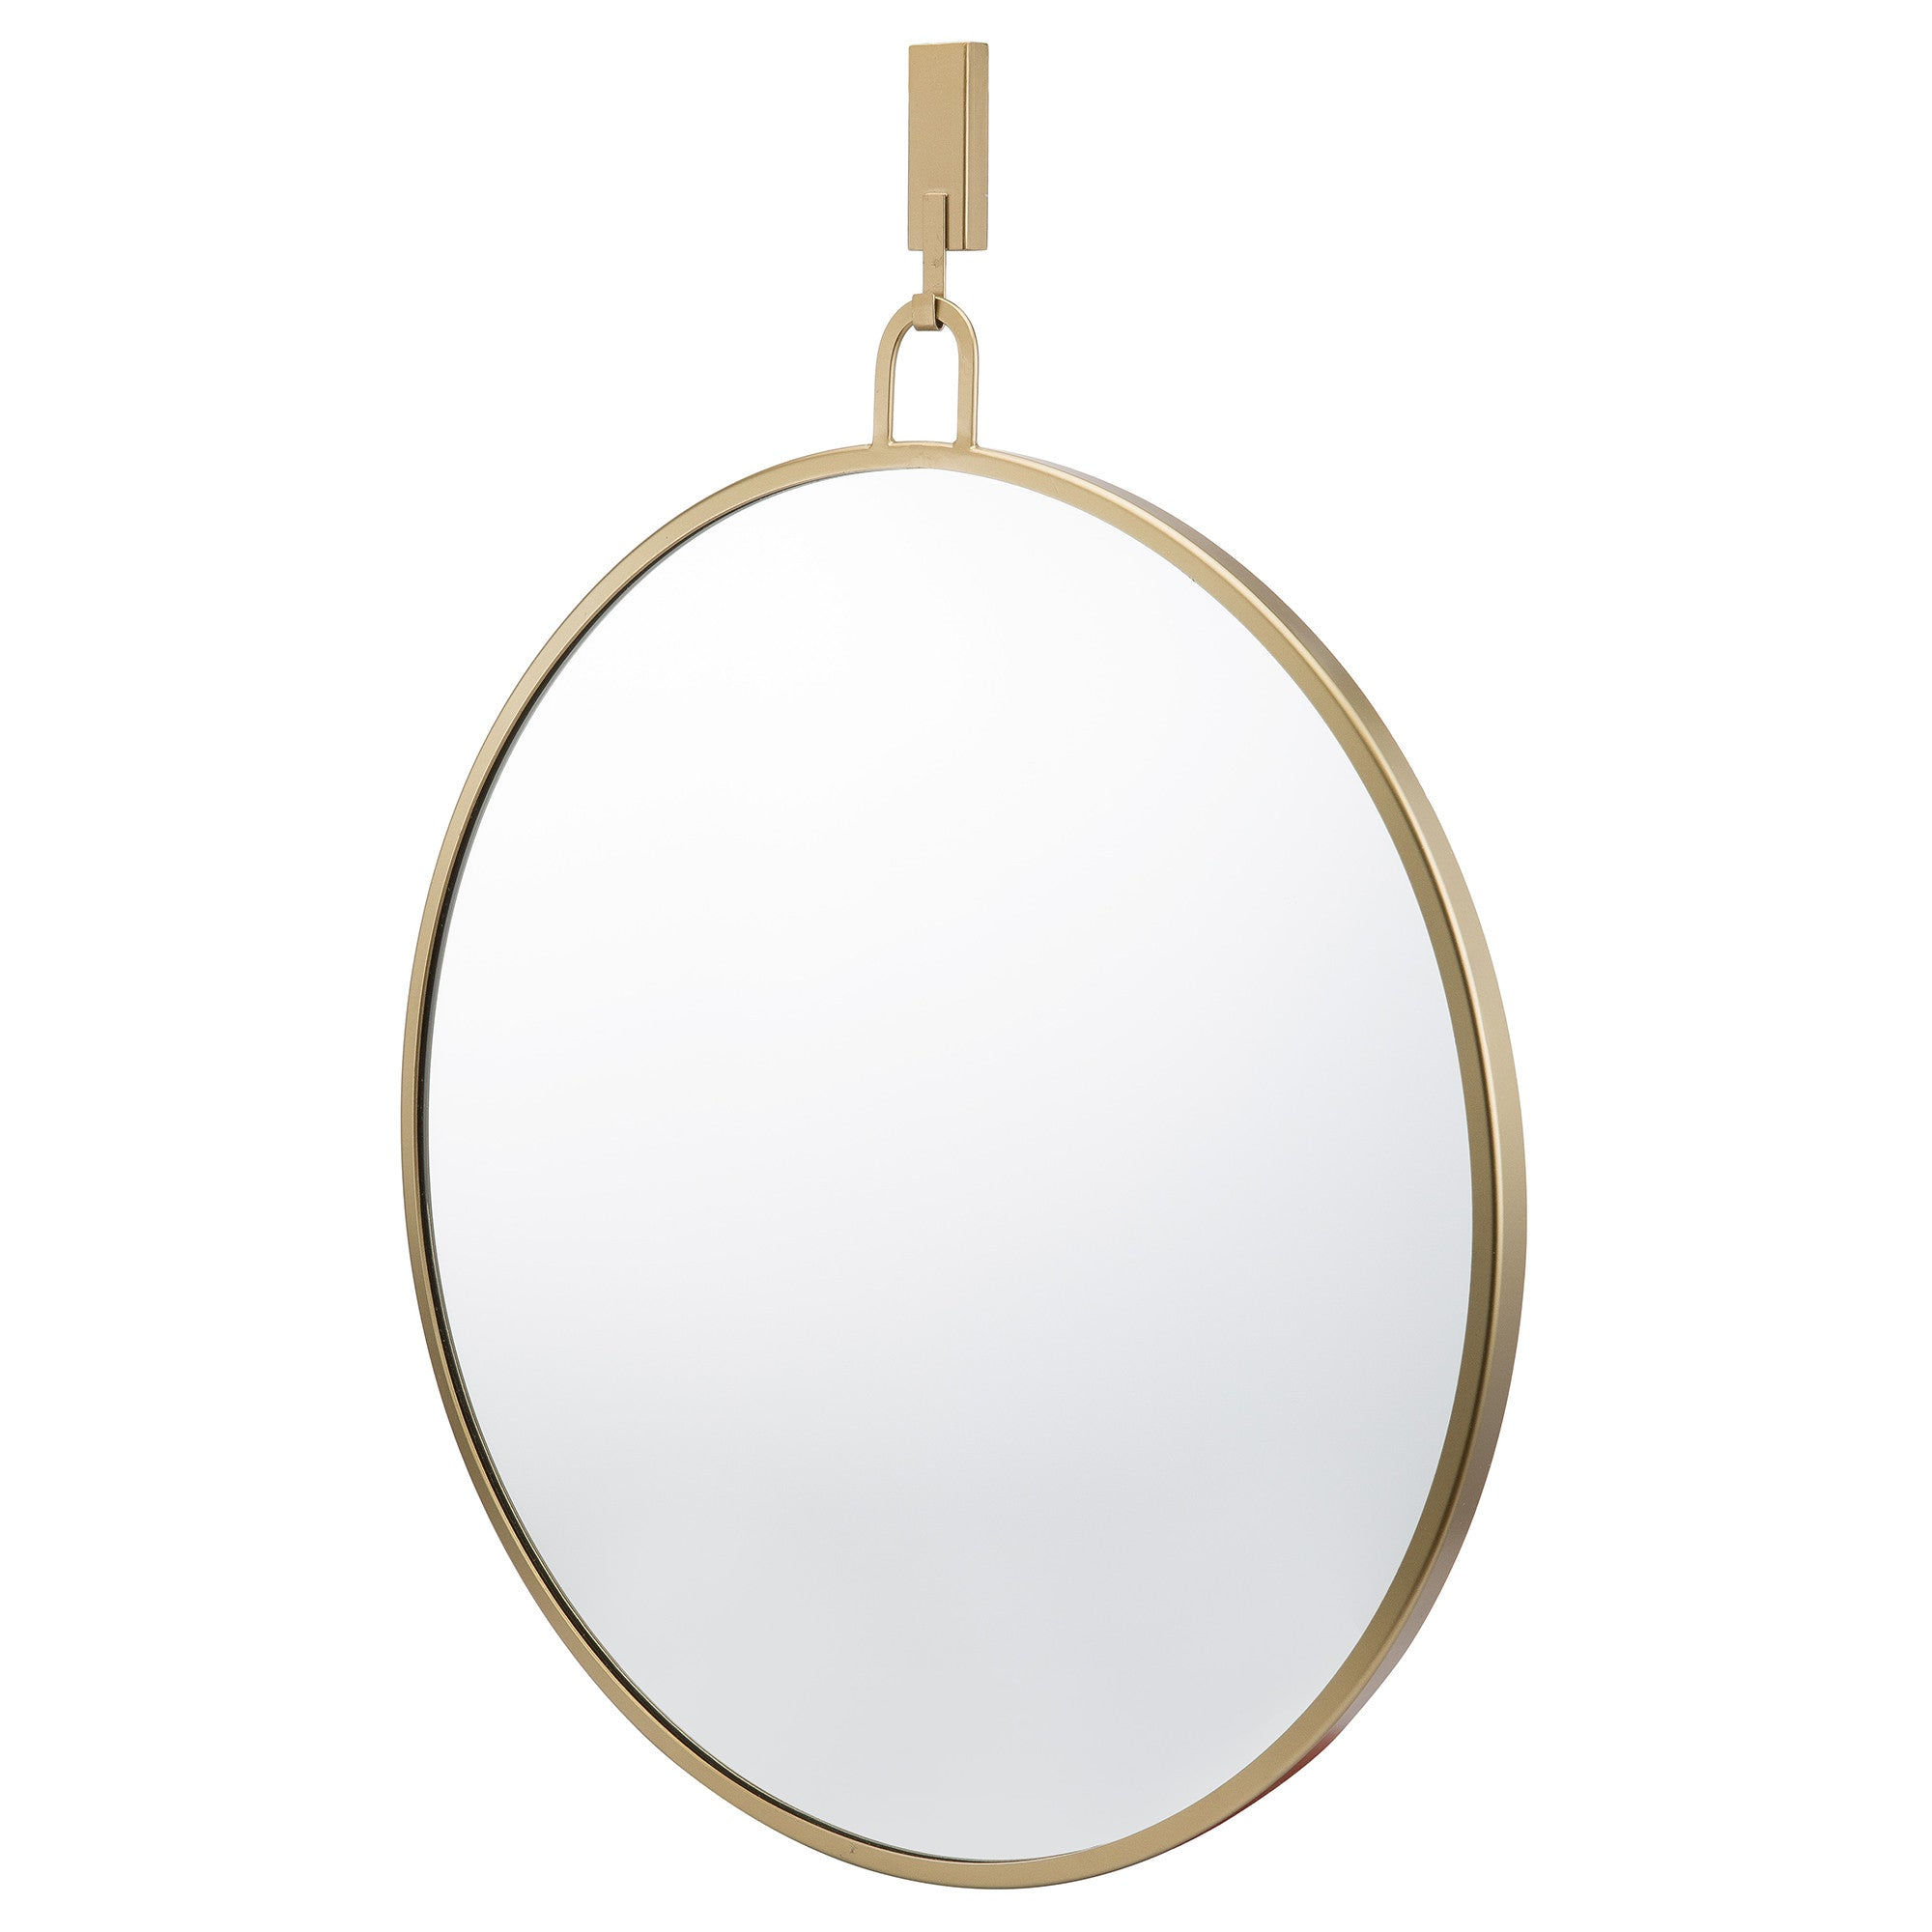 Stopwatch 30-in Round Accent Mirror - Gold - 407A01GO